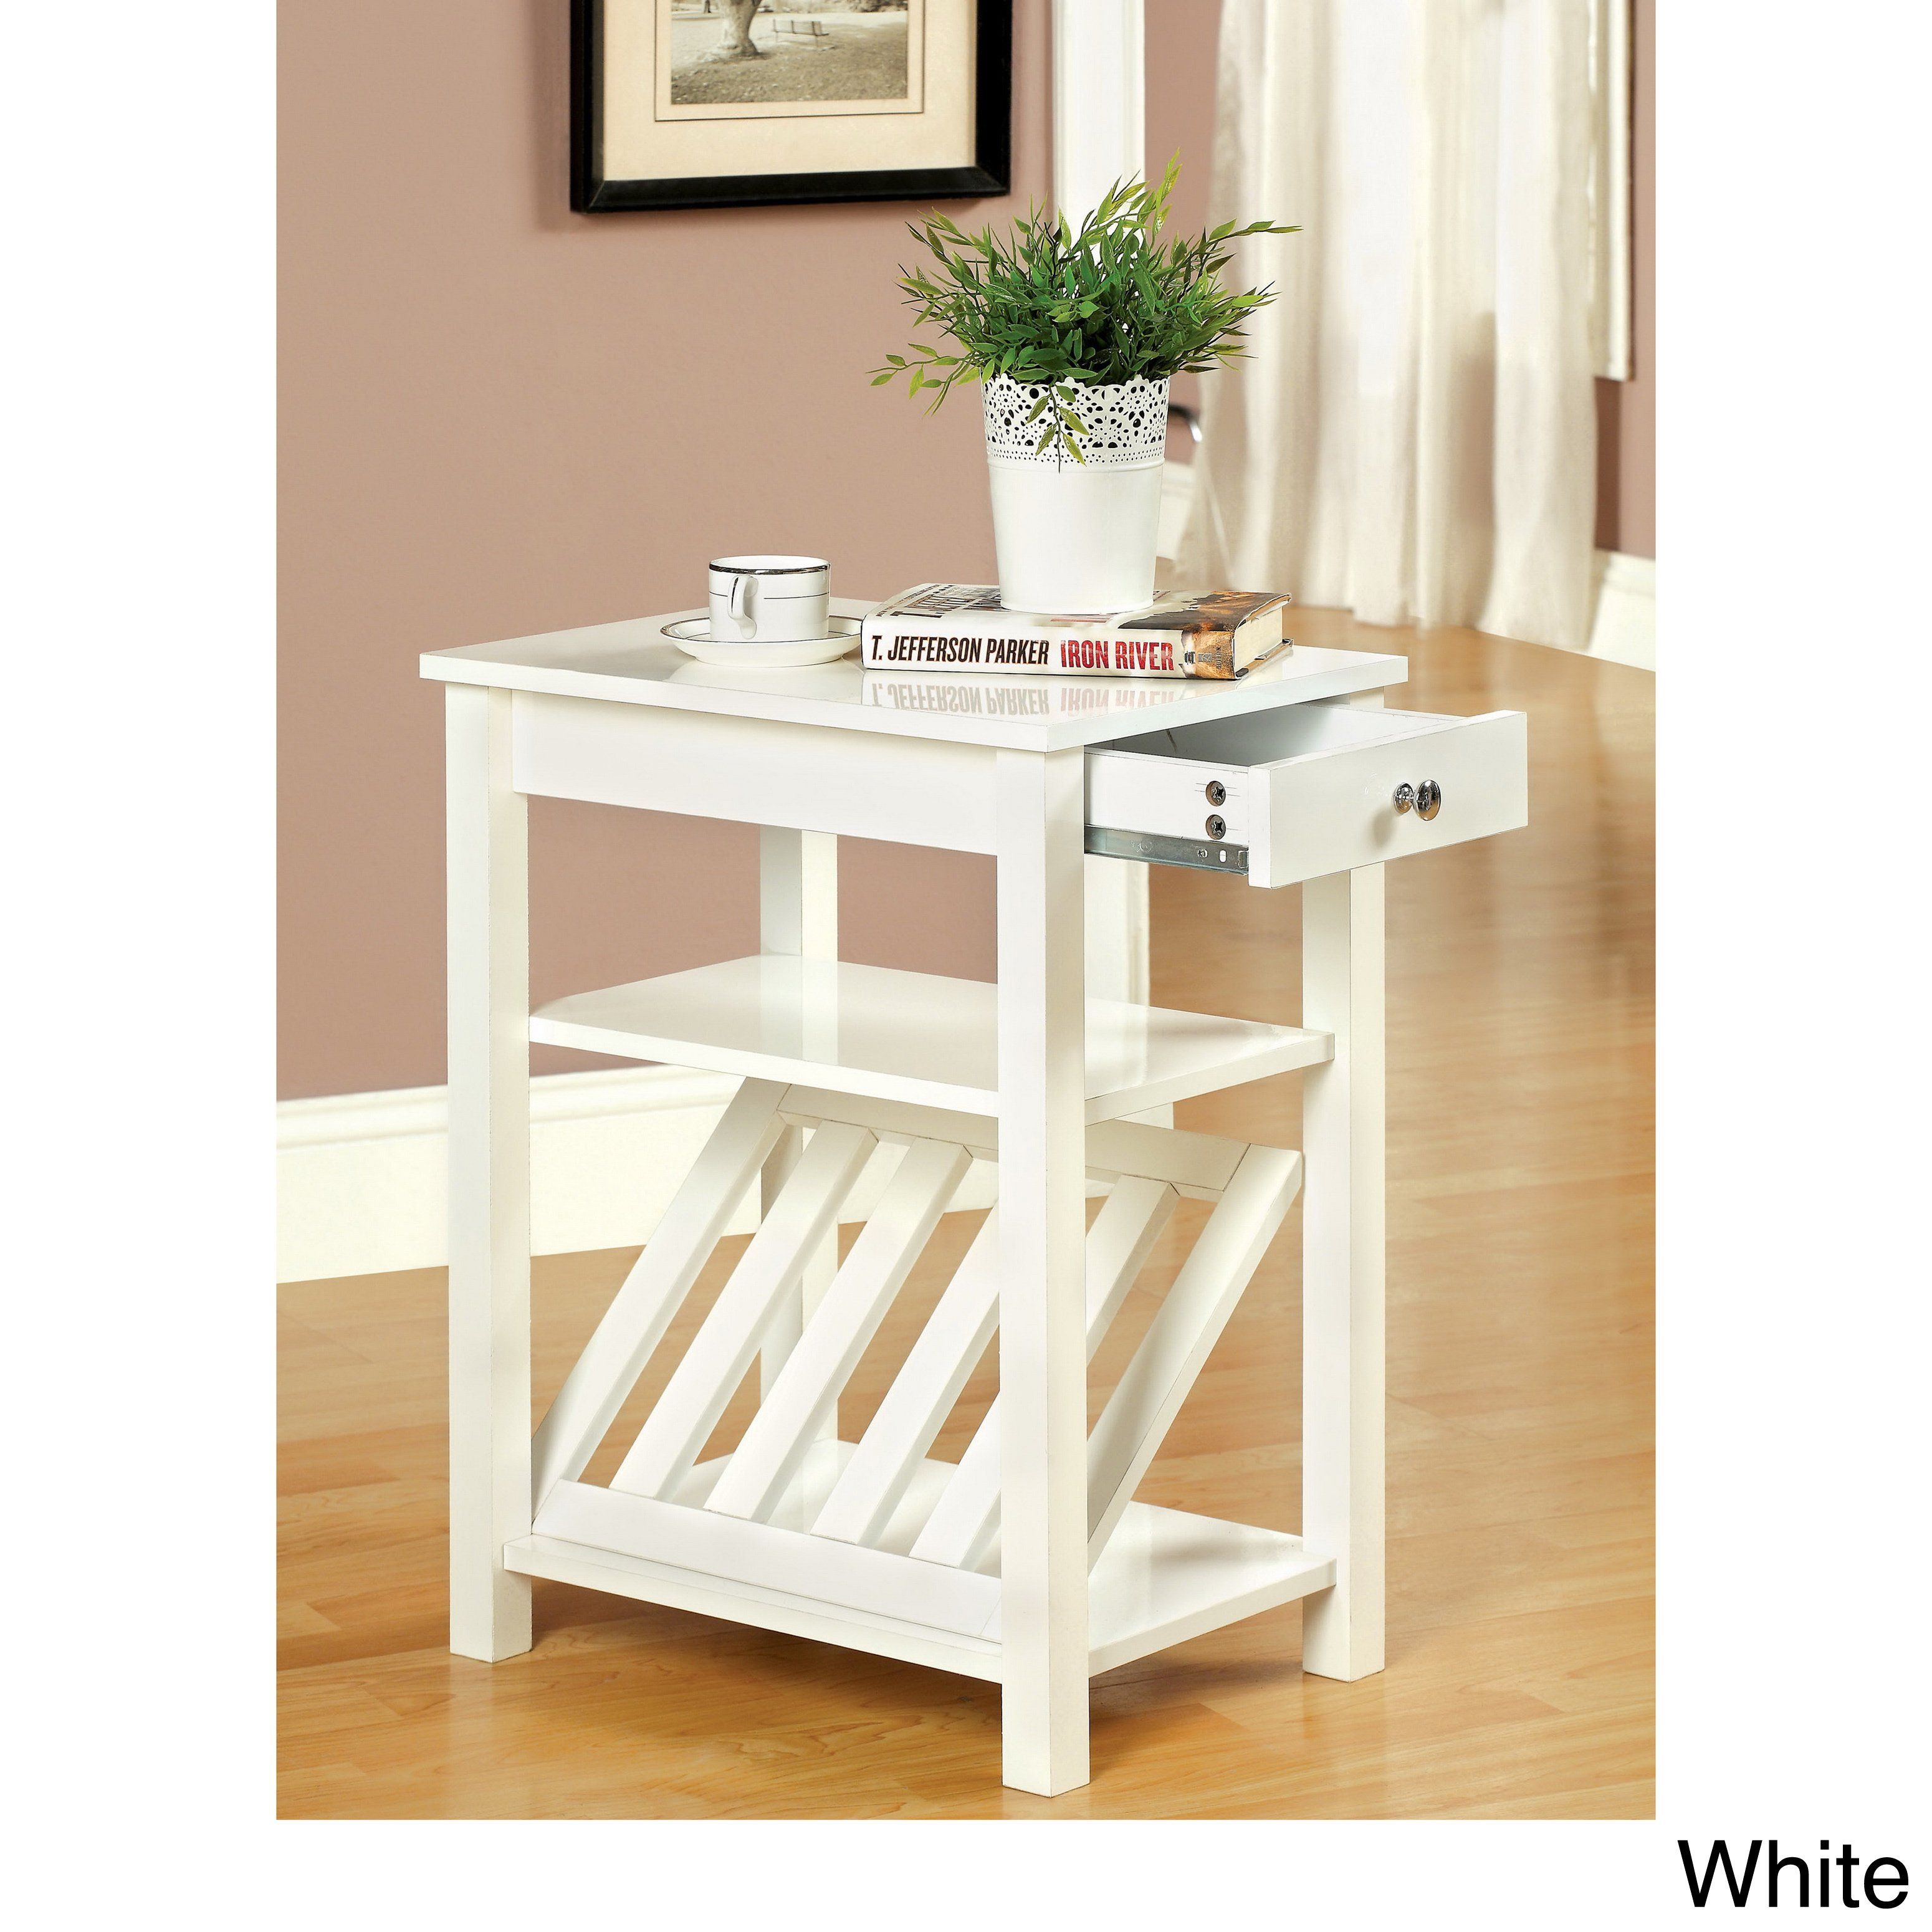 furniture america corin accent table with storage drawer and white magazine rack free shipping today oak floor edge trim oil rubbed bronze spray paint round screw legs home bar